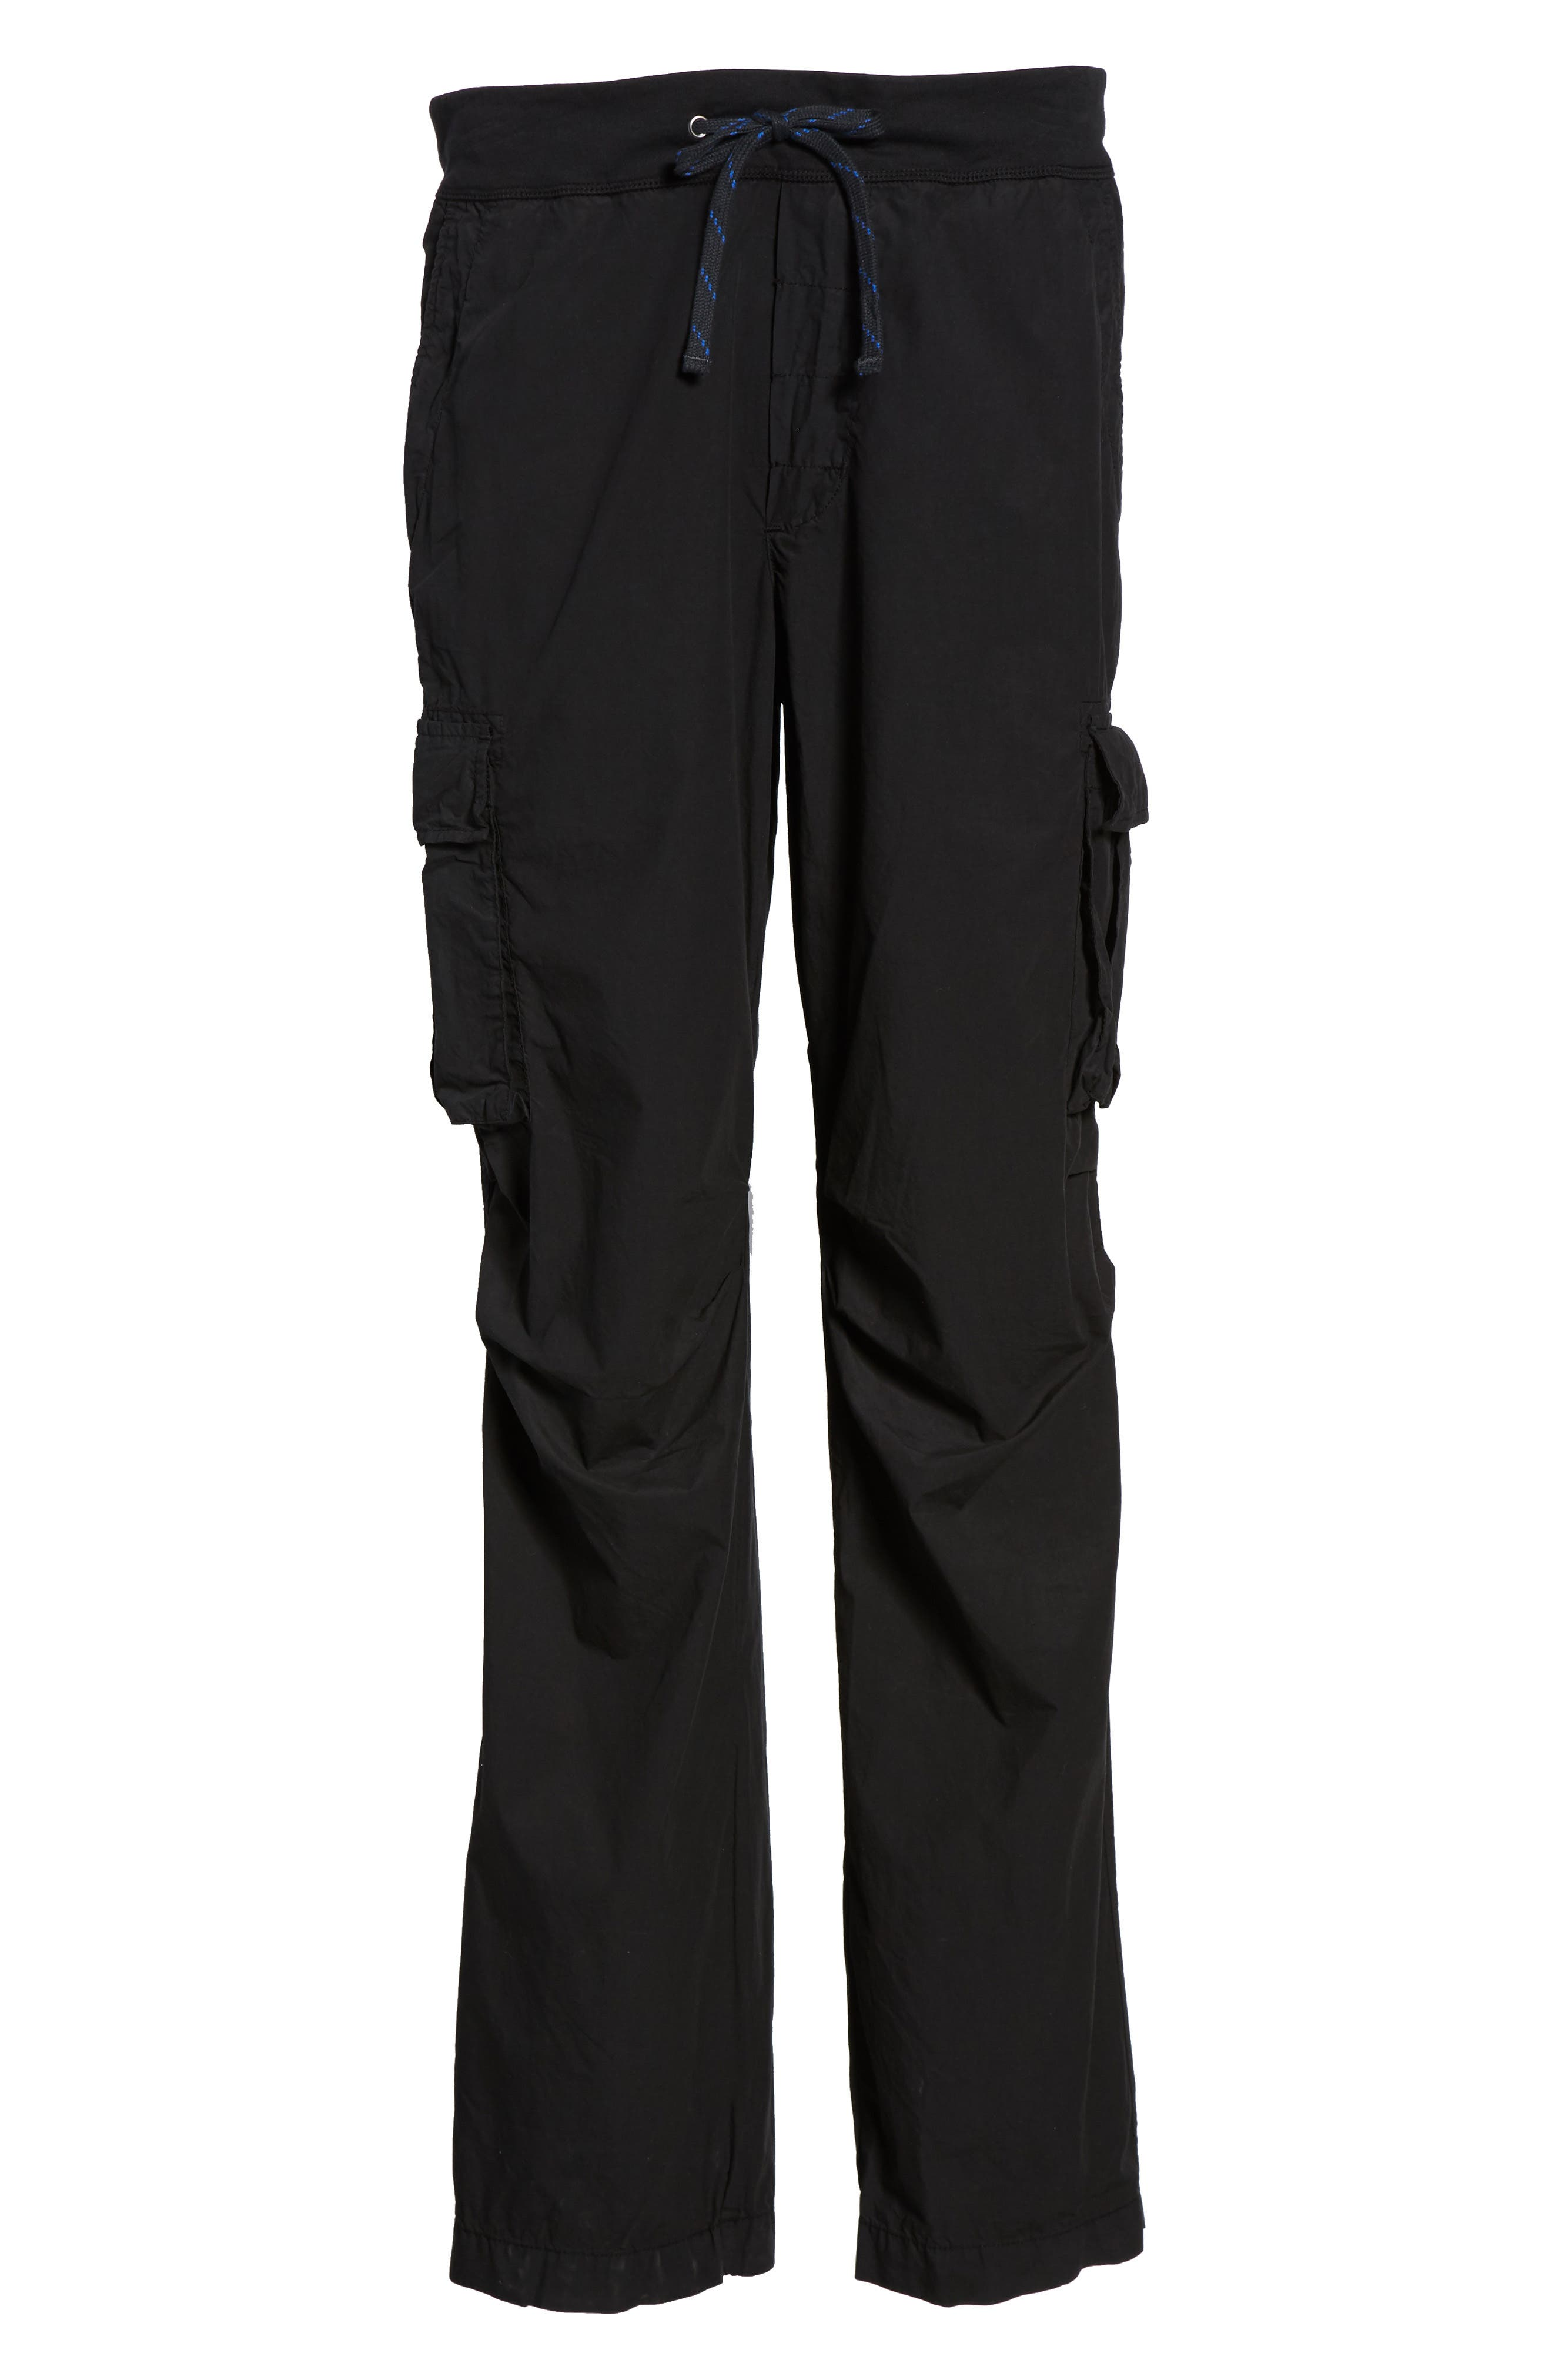 Contrast Waist Cargo Pants,                             Alternate thumbnail 5, color,                             Black